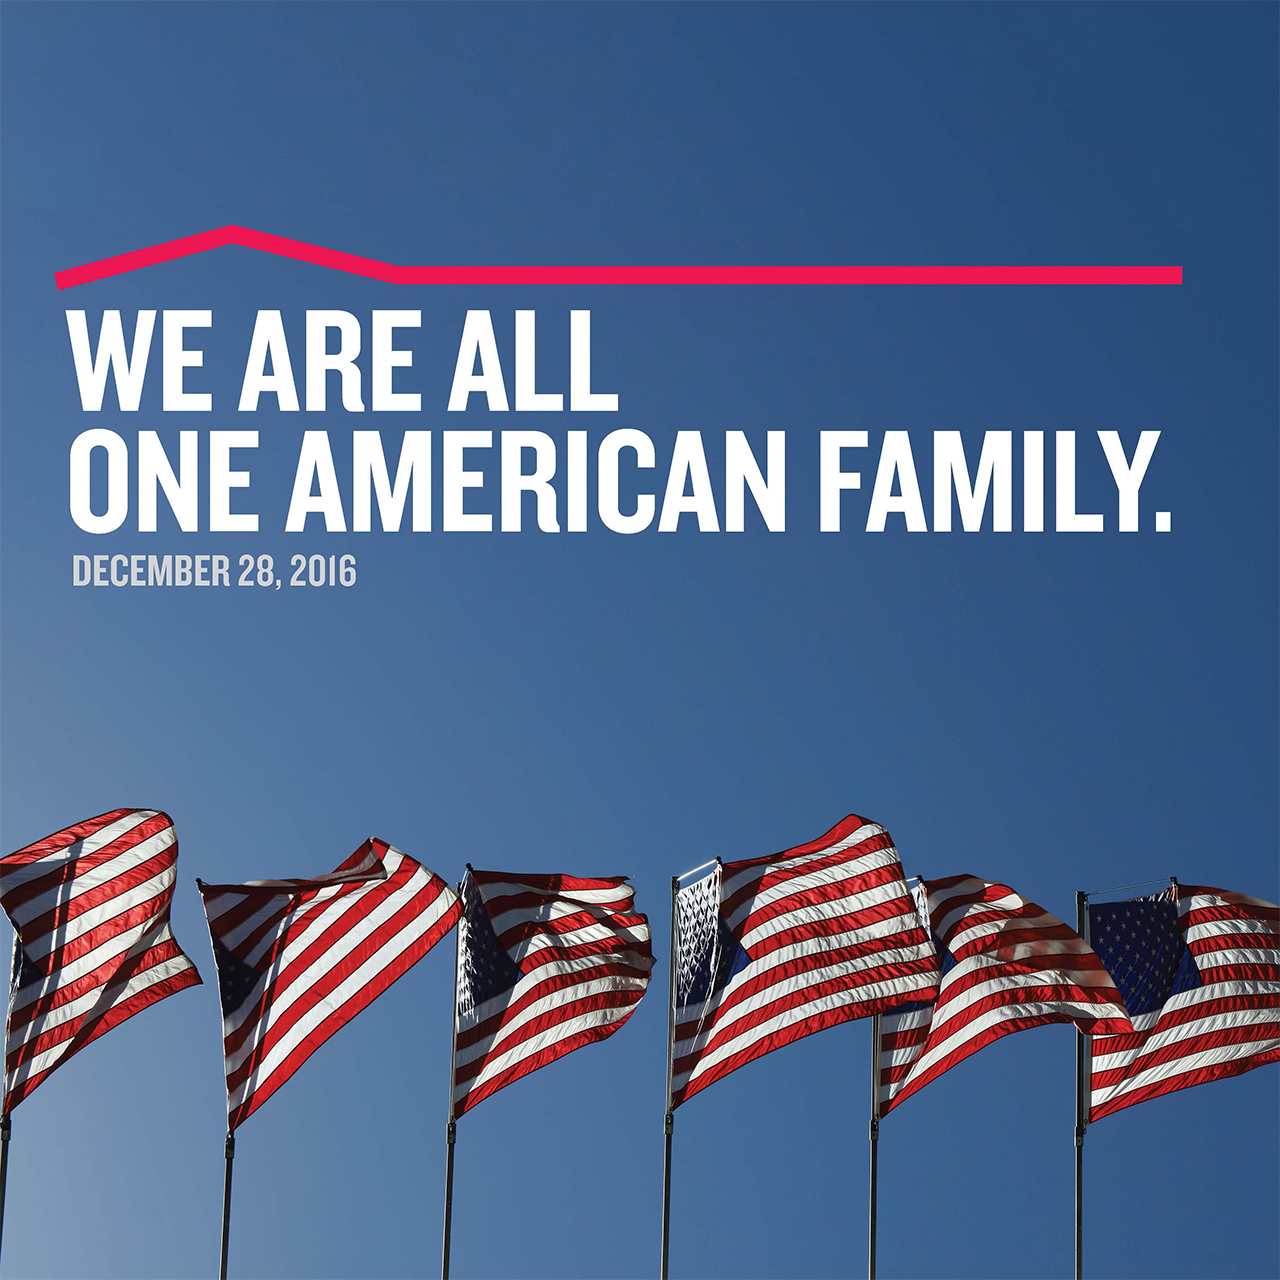 One American Family